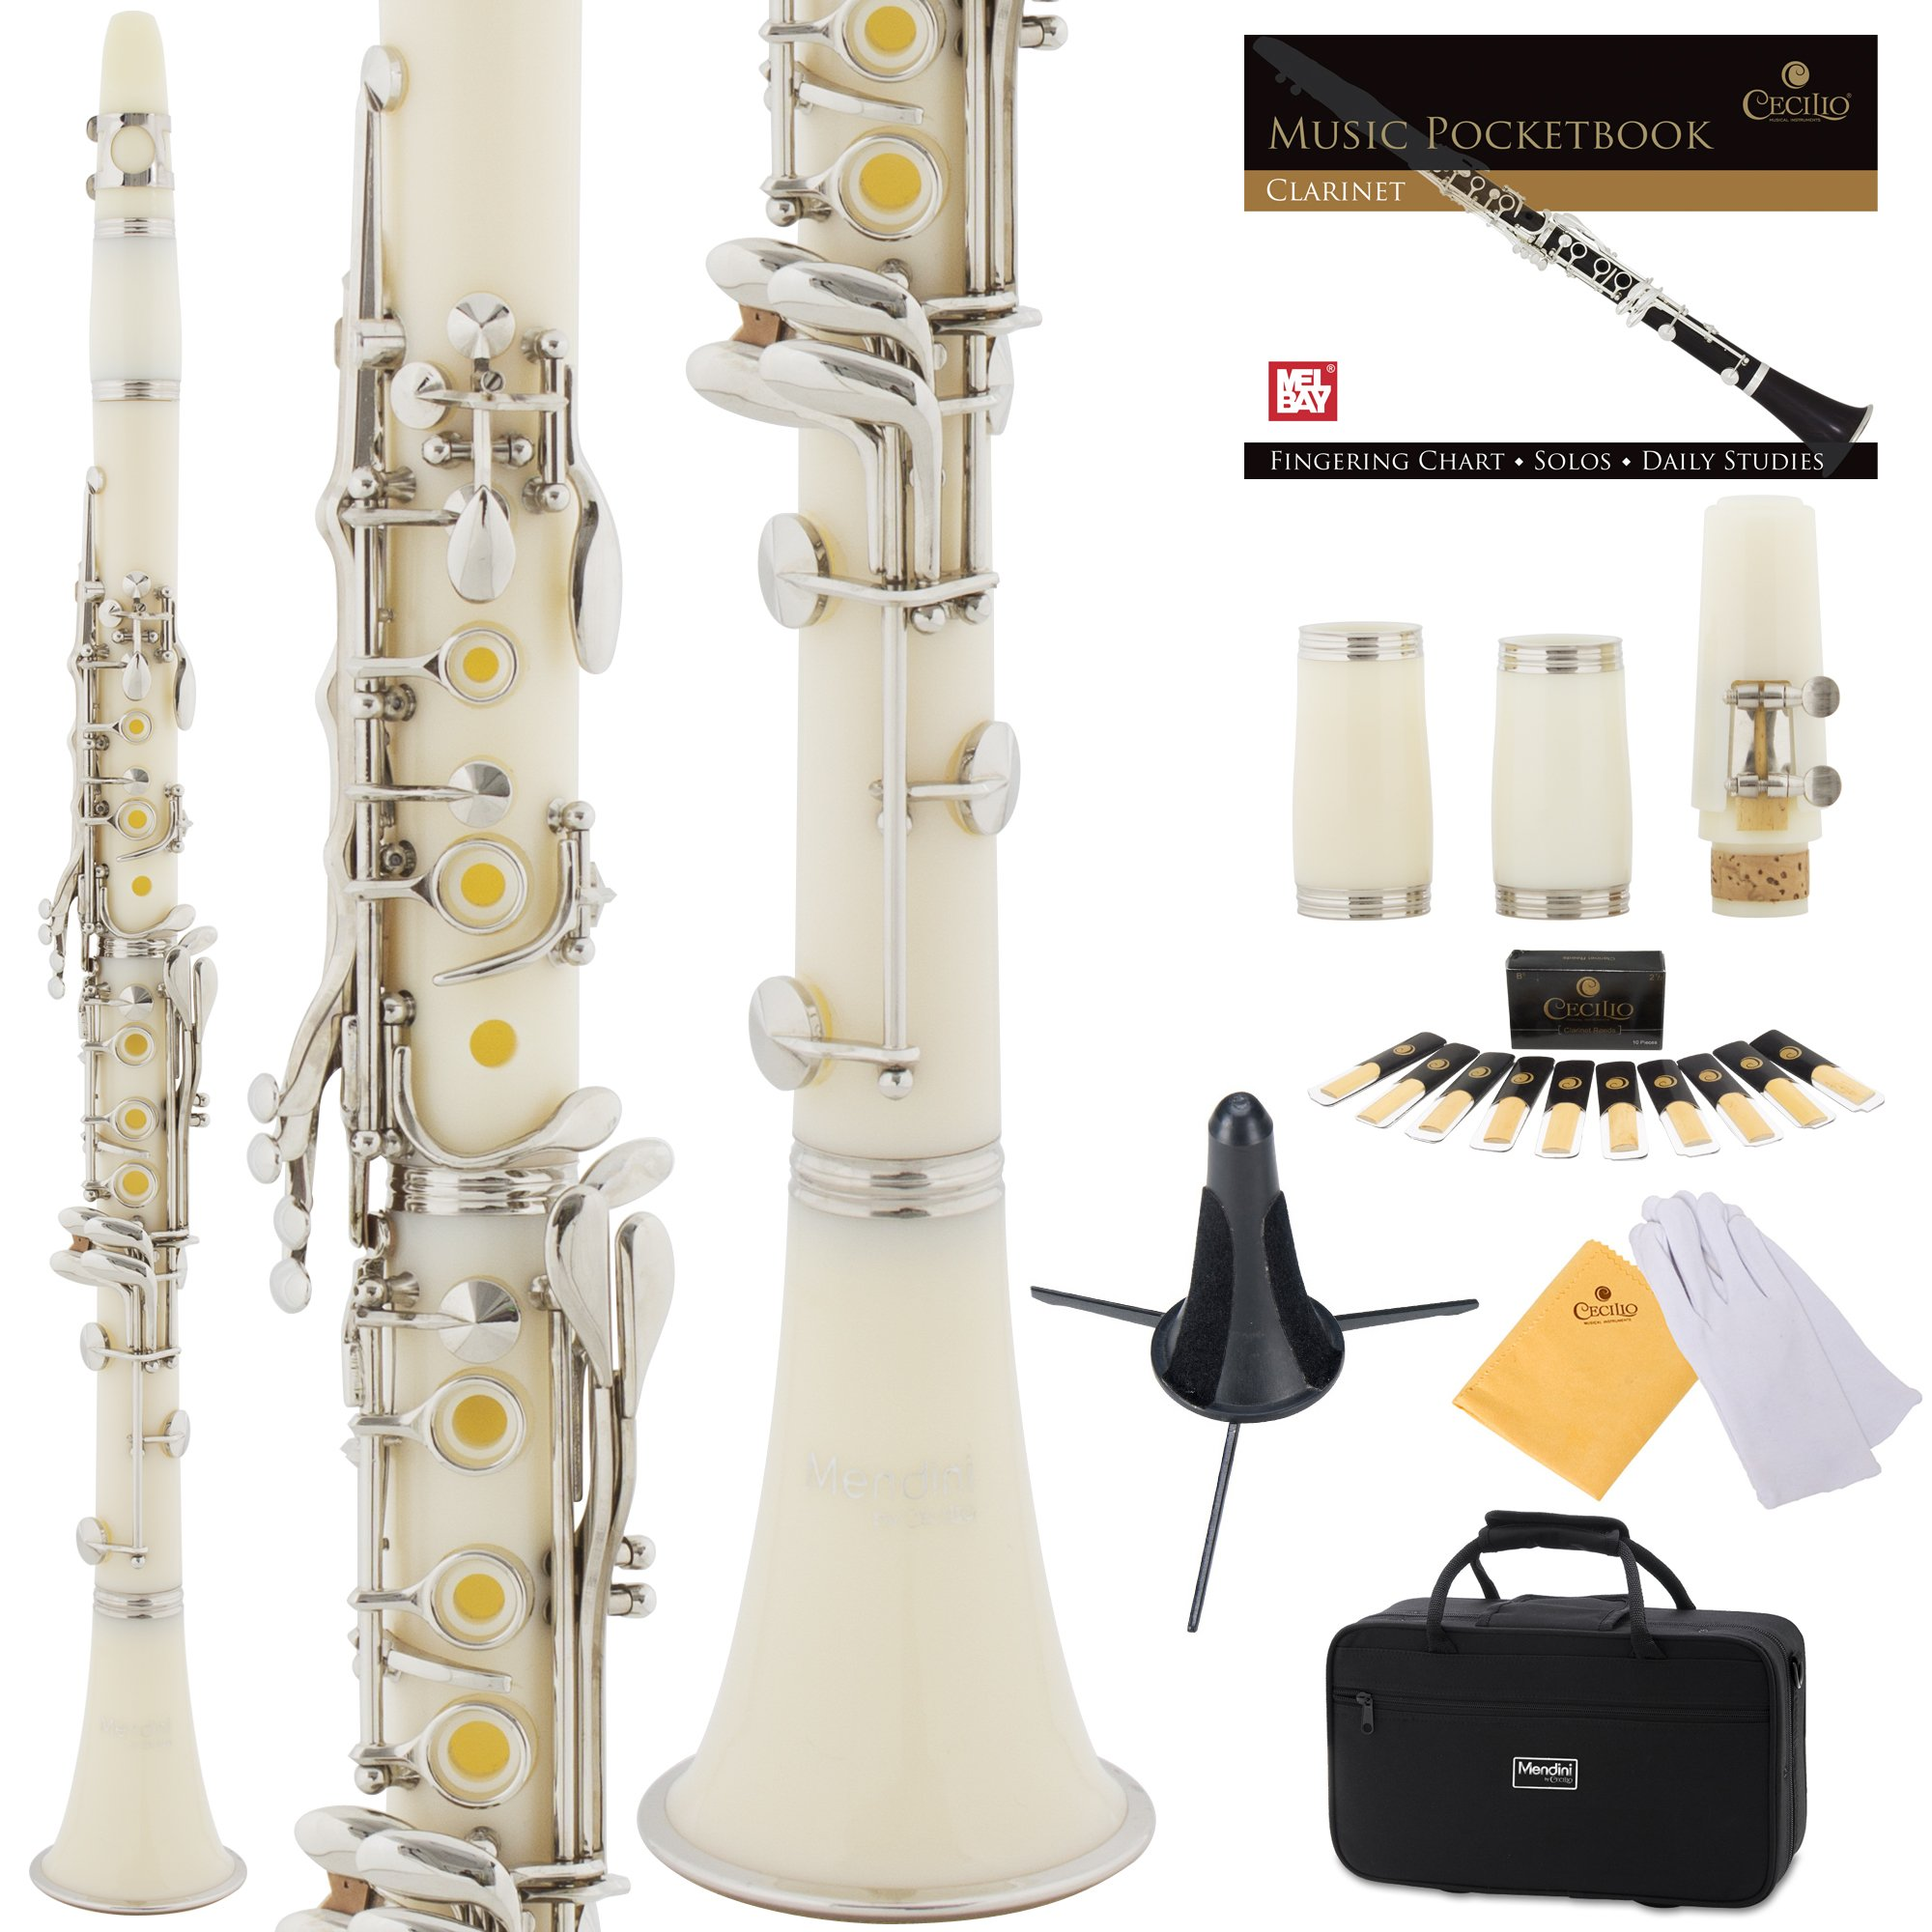 Mendini White ABS B Flat Clarinet with 2 Barrels, Case, Stand, Pocketbook, Mouthpiece, 10 Reeds and More, MCT-2W